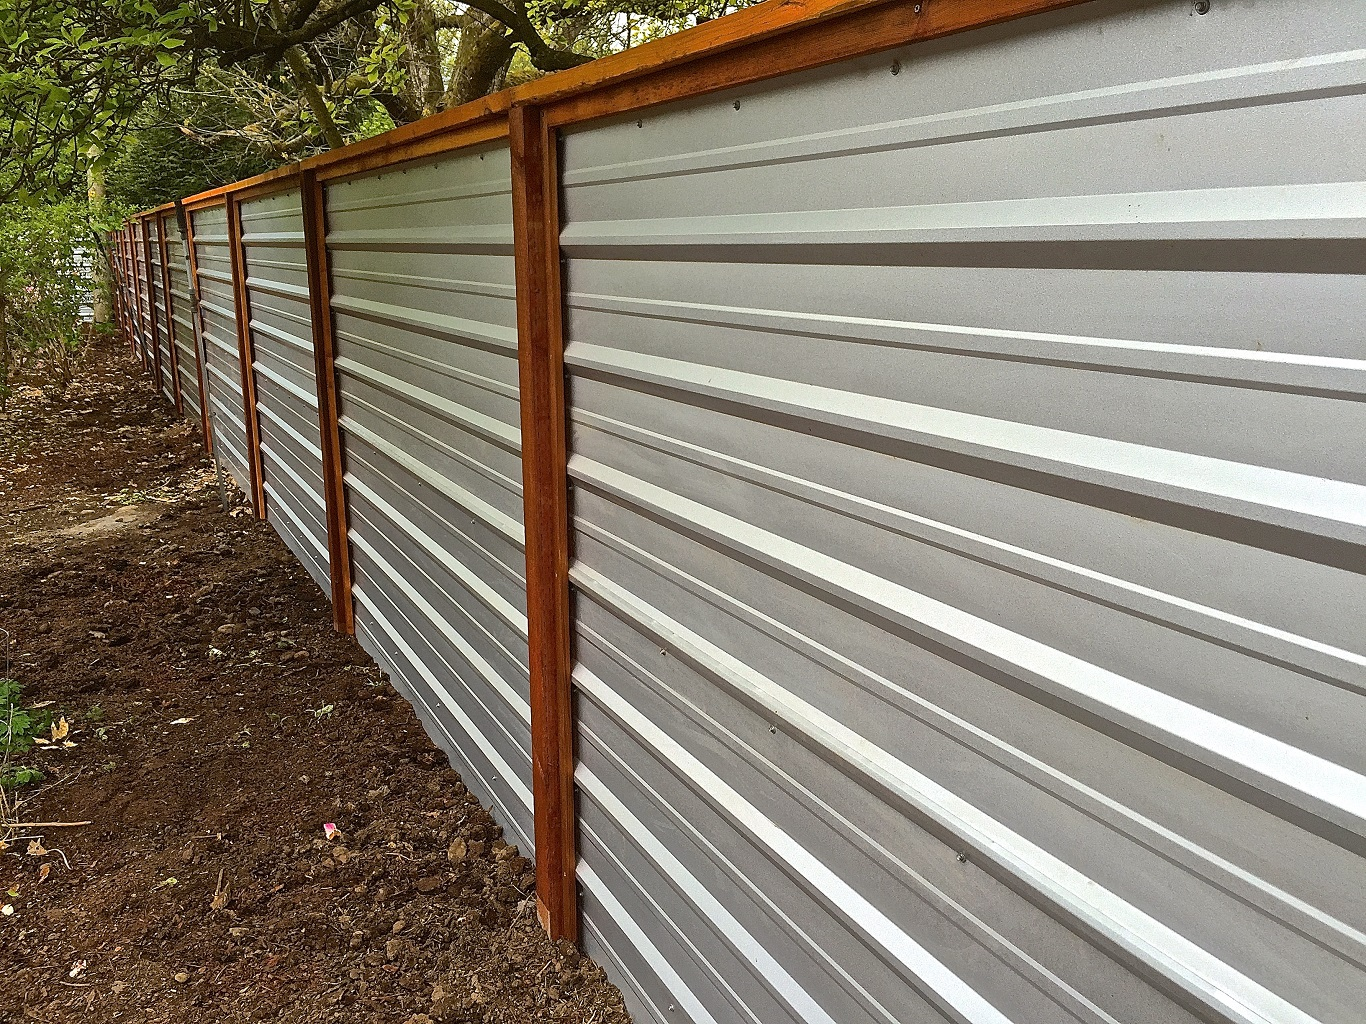 how to cut corrugated metal for crafts